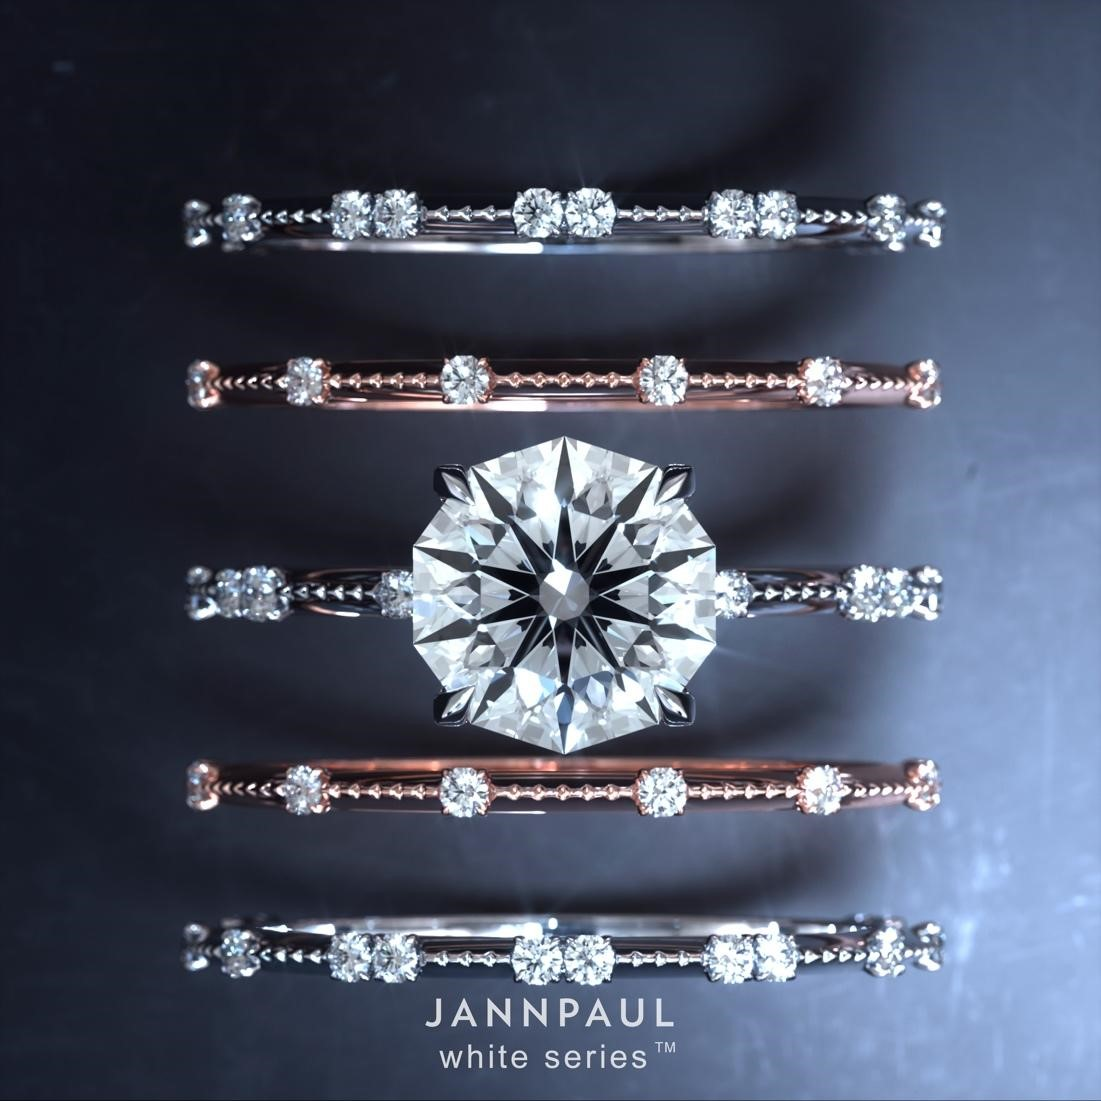 JANNPAUL revolutionises the global diamond market with the Decagon 10 Hearts  Arrows Diamond